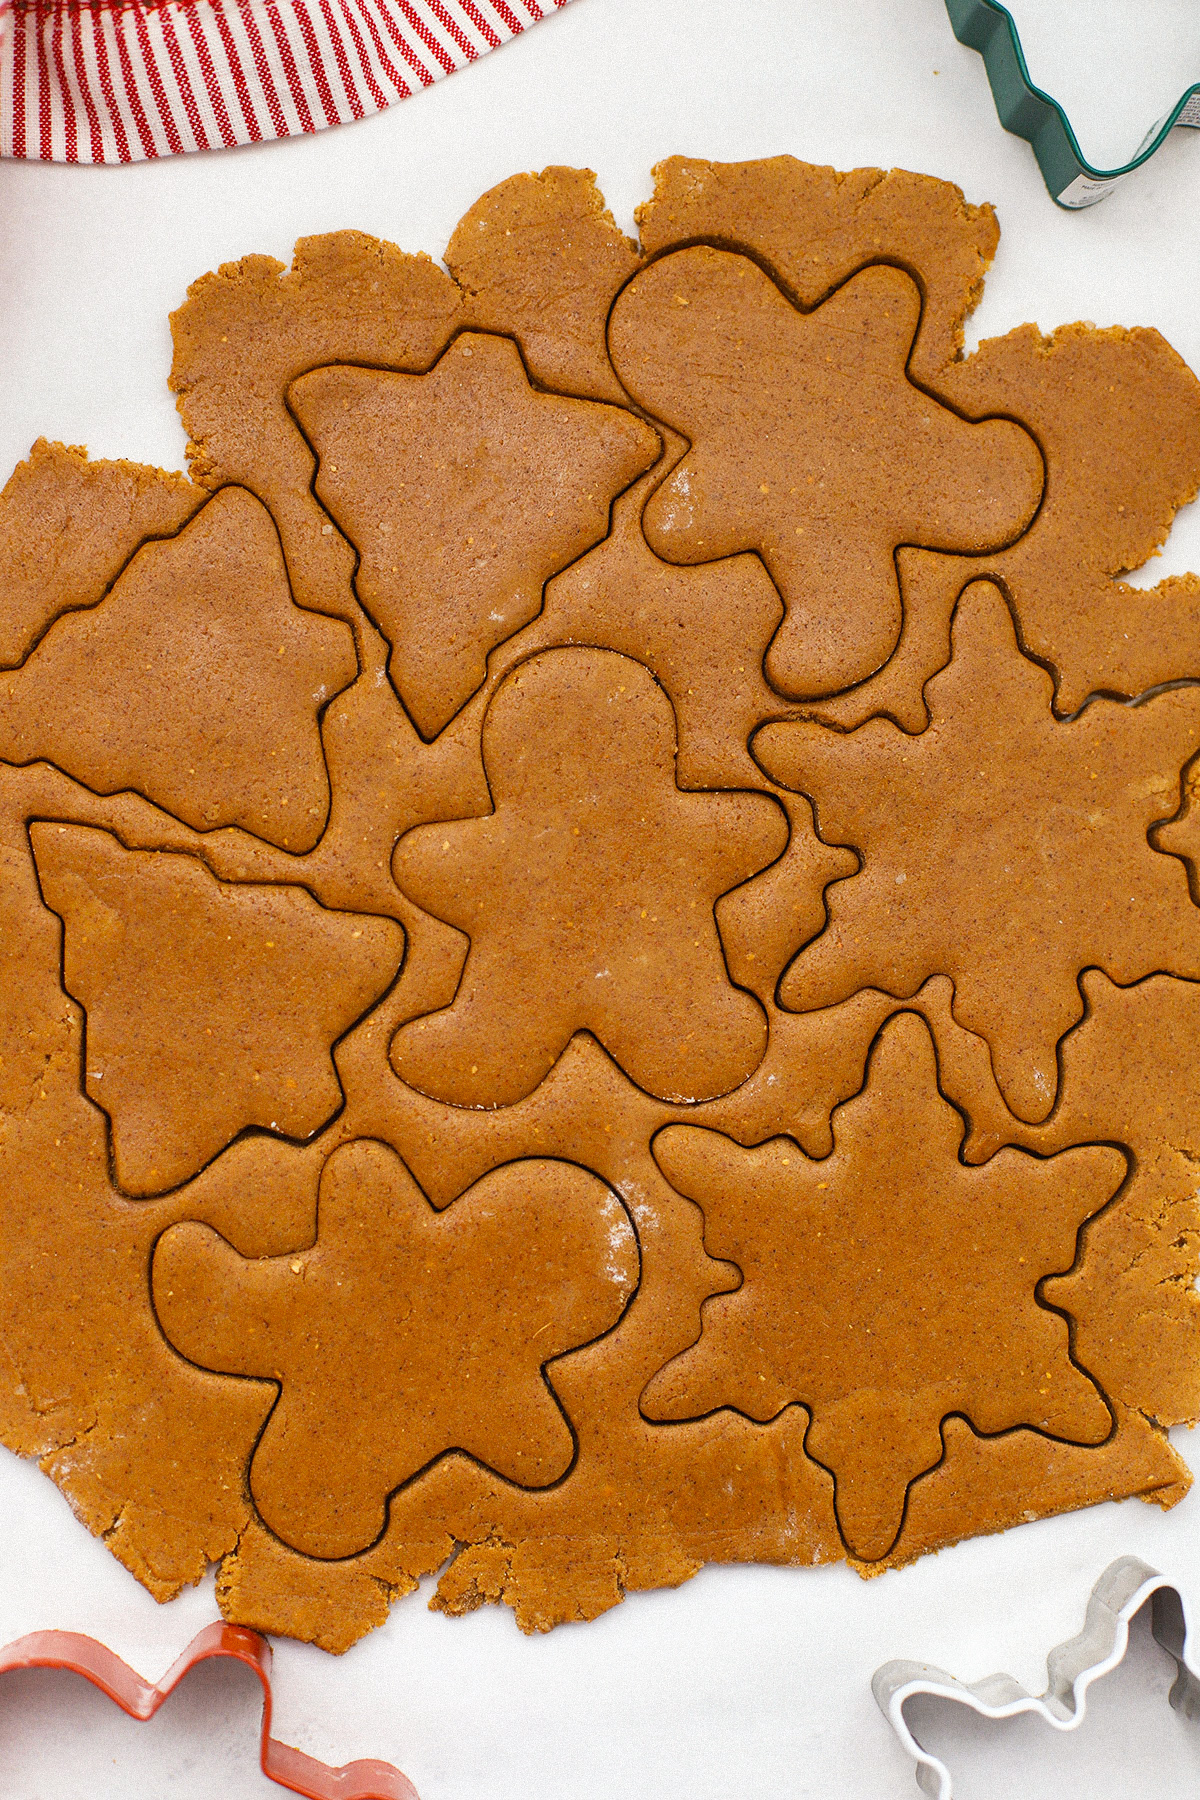 Close up view of gluten-free gingerbread cookie dough with cutout shapes on a white background